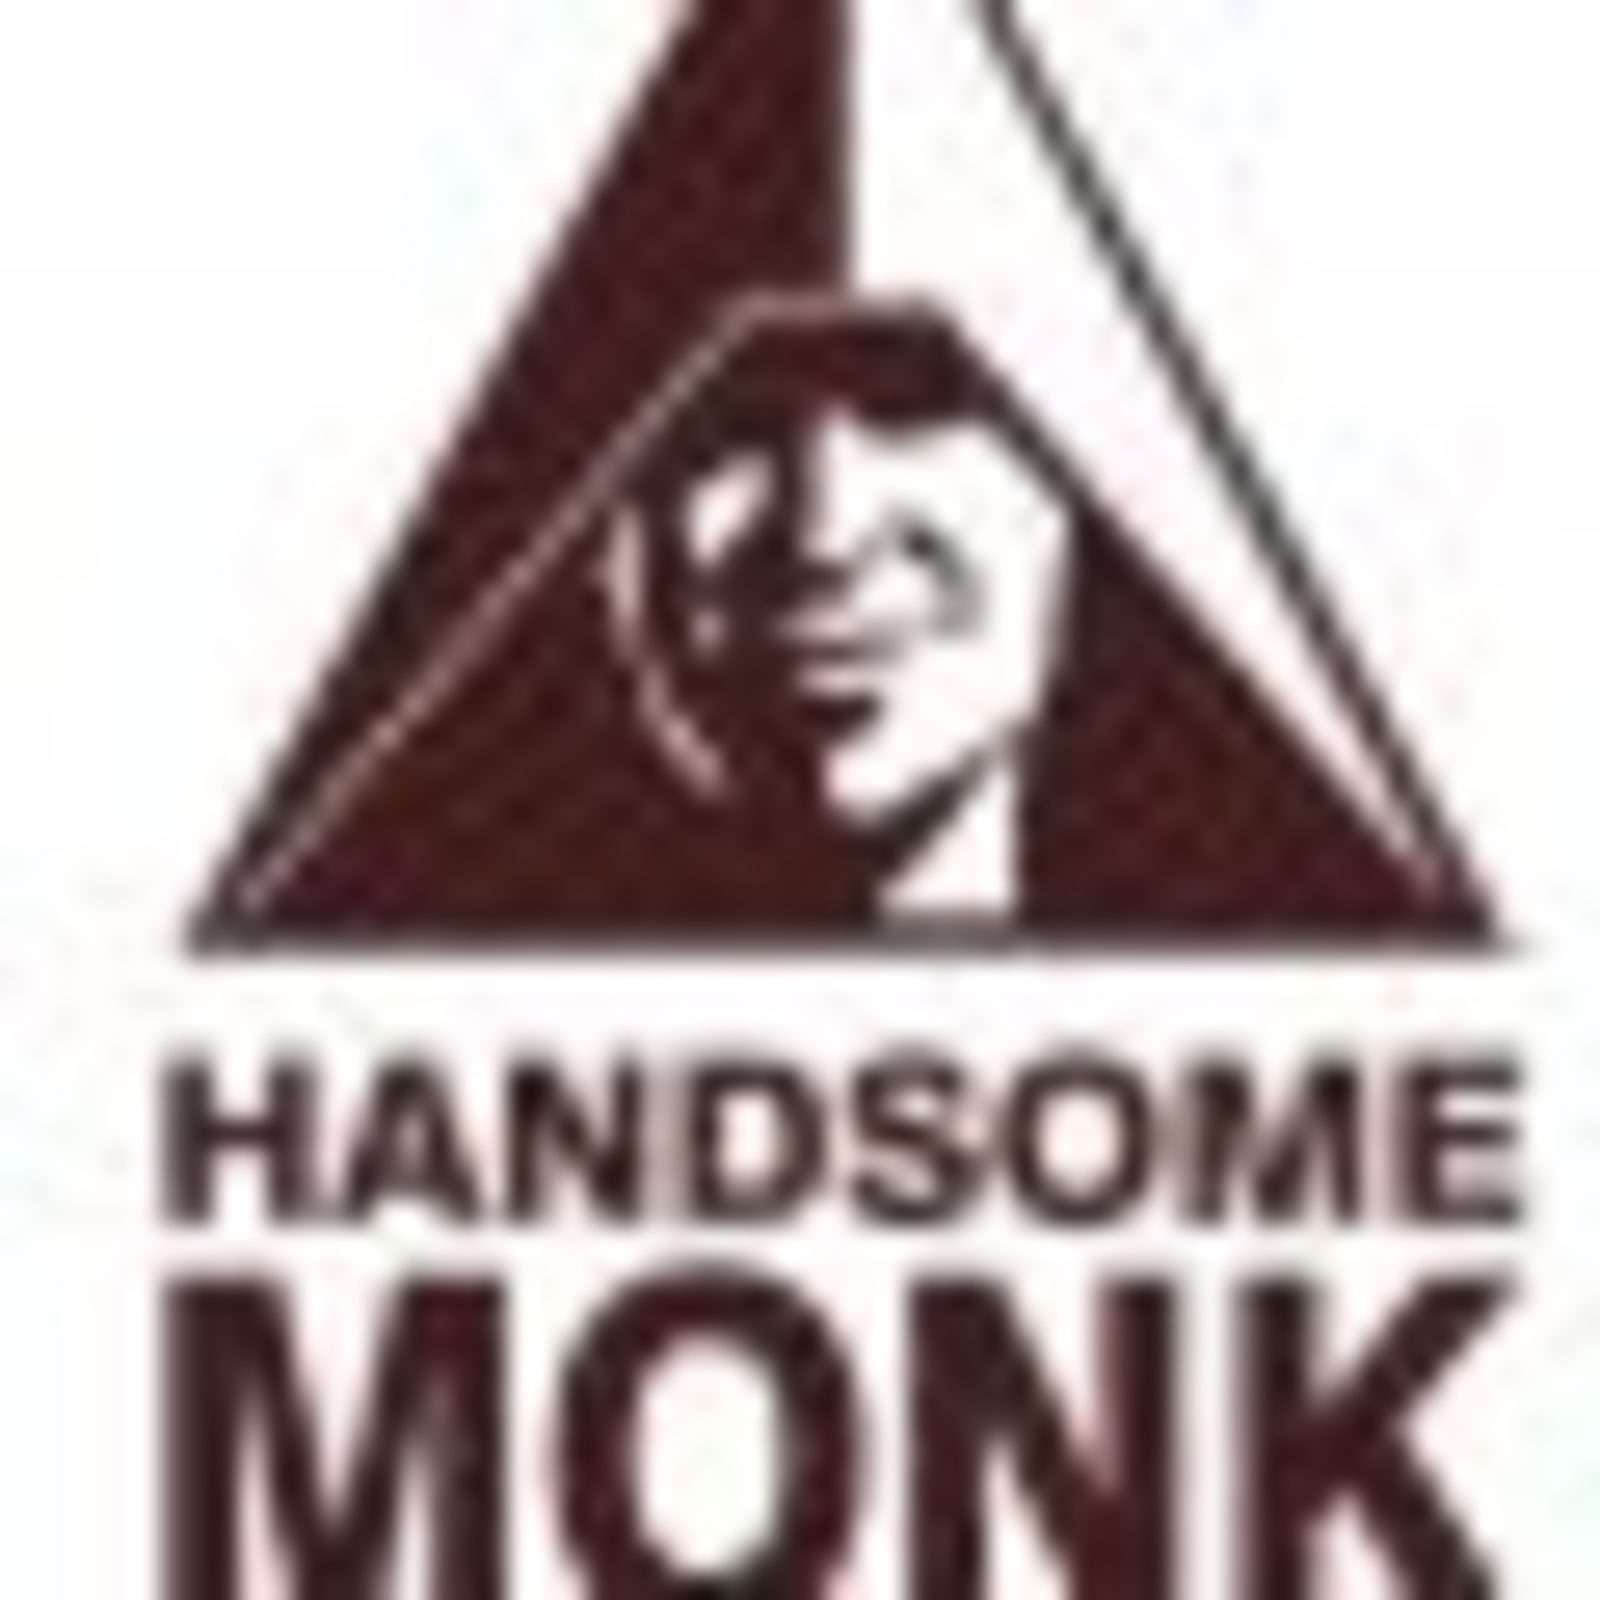 handsome-monk-coffee-house